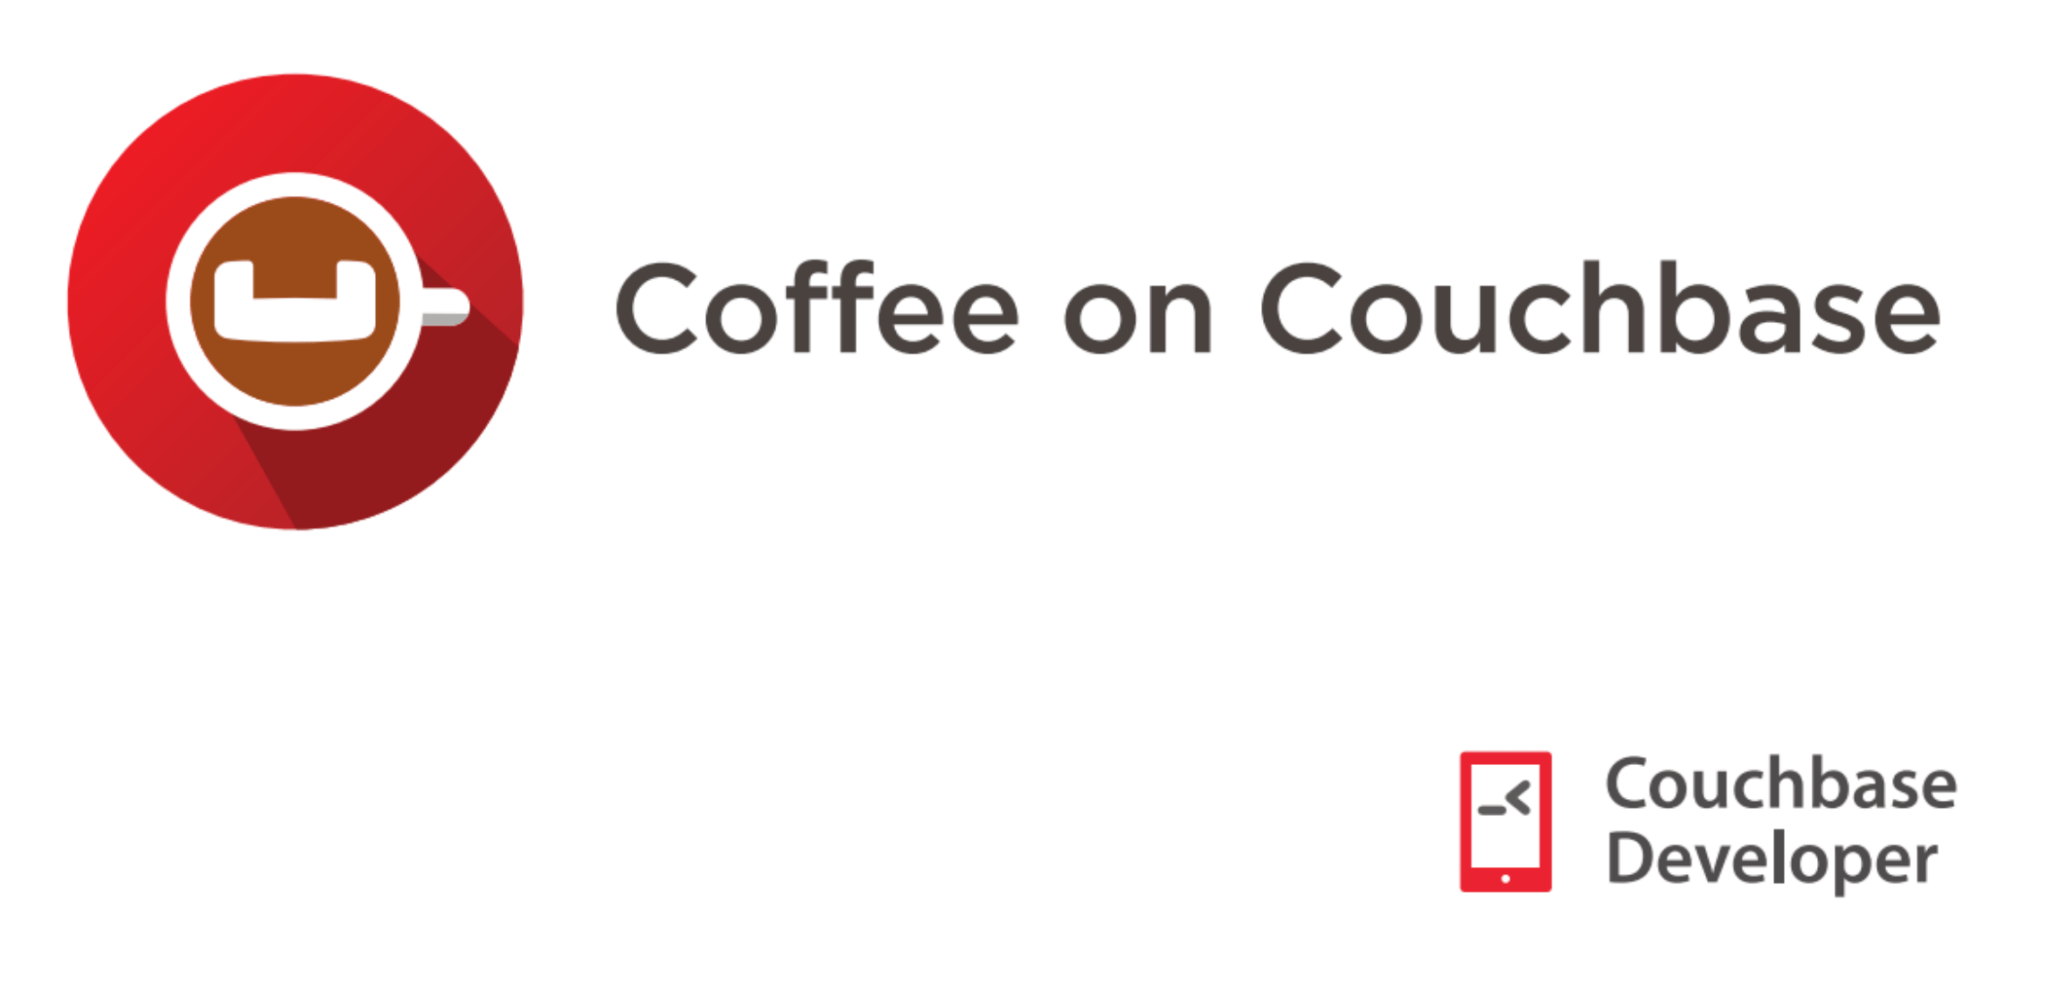 Coffee on Couchbase.